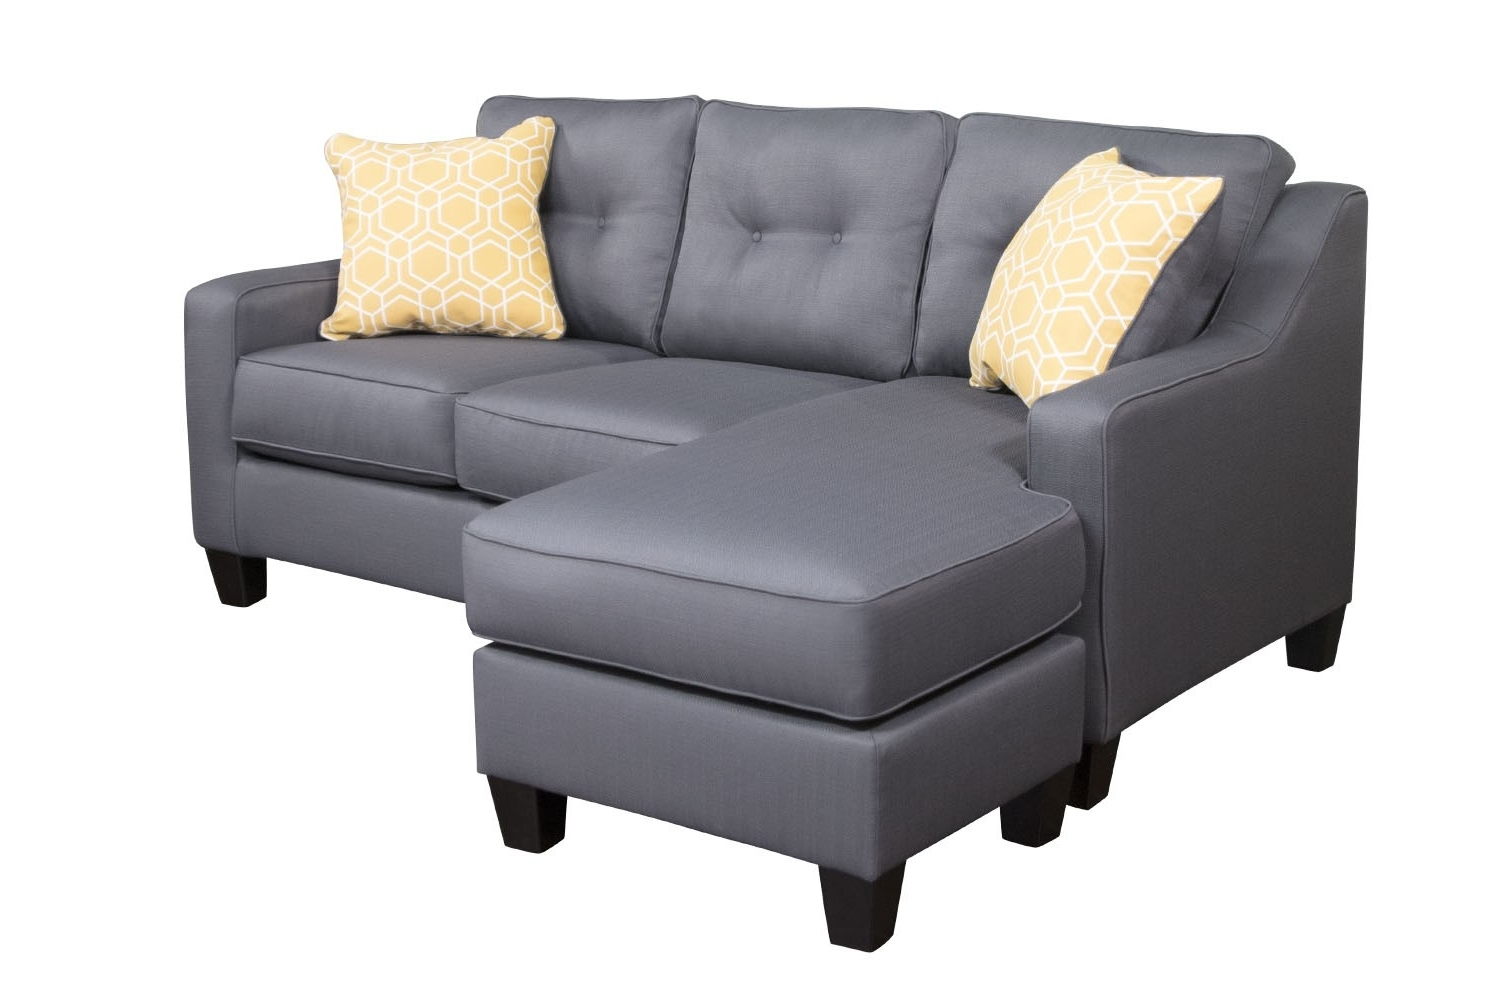 Aldie Gray Sofa Chaise Sleeper (View 11 of 15)